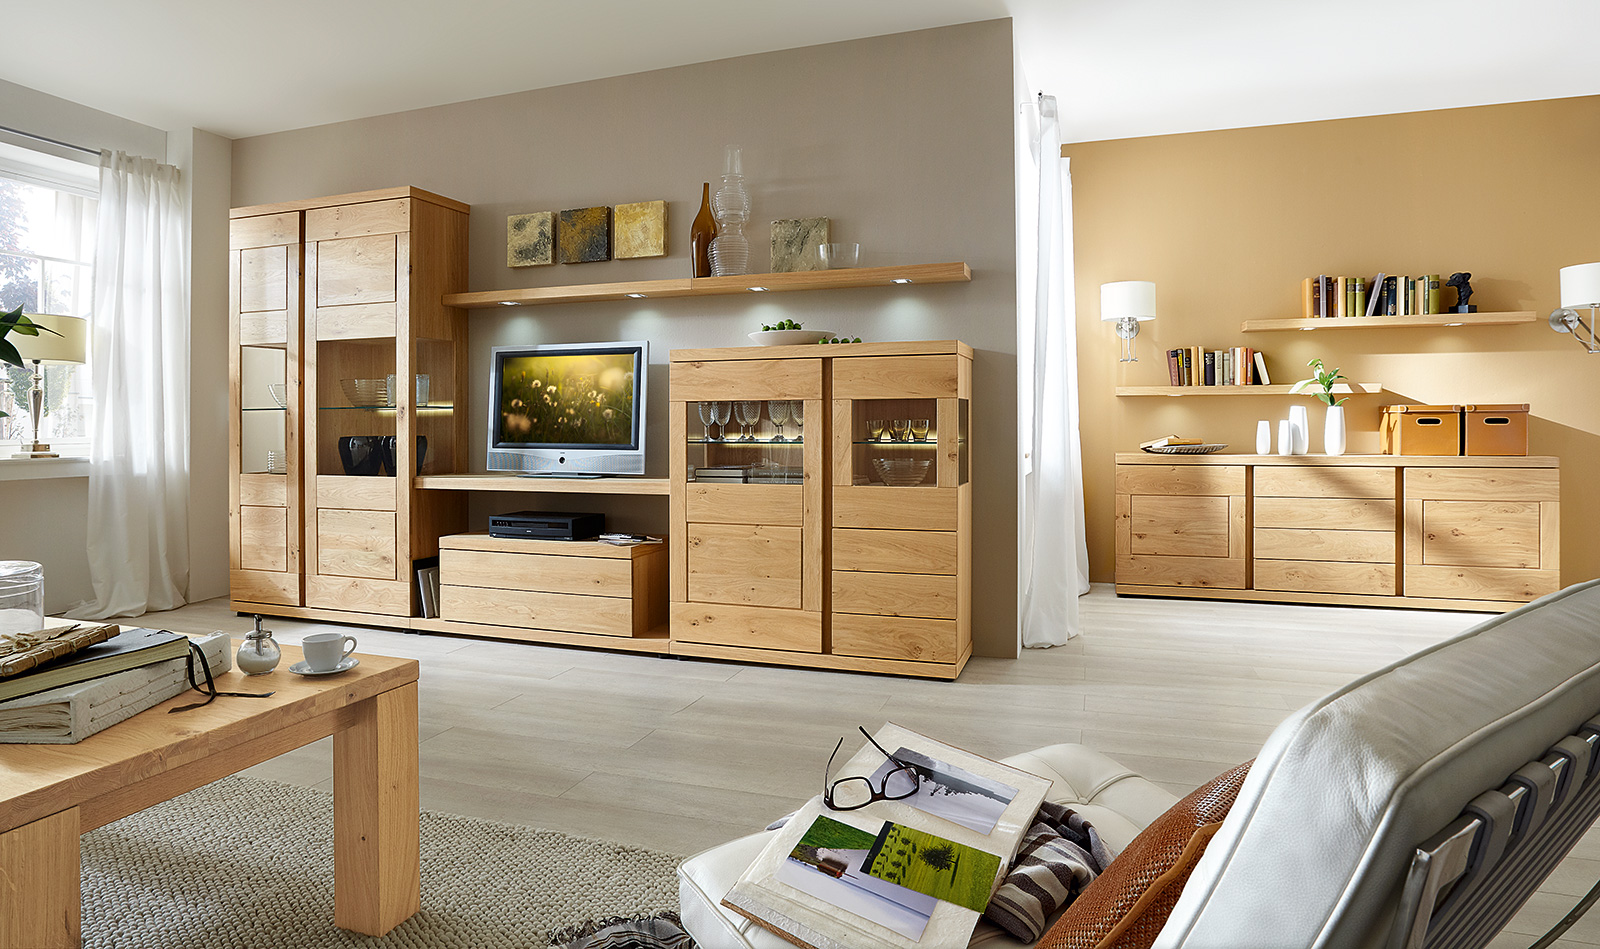 wohnzimmer programme next level 6 0 venjakob m bel vorsprung durch design und qualit t. Black Bedroom Furniture Sets. Home Design Ideas